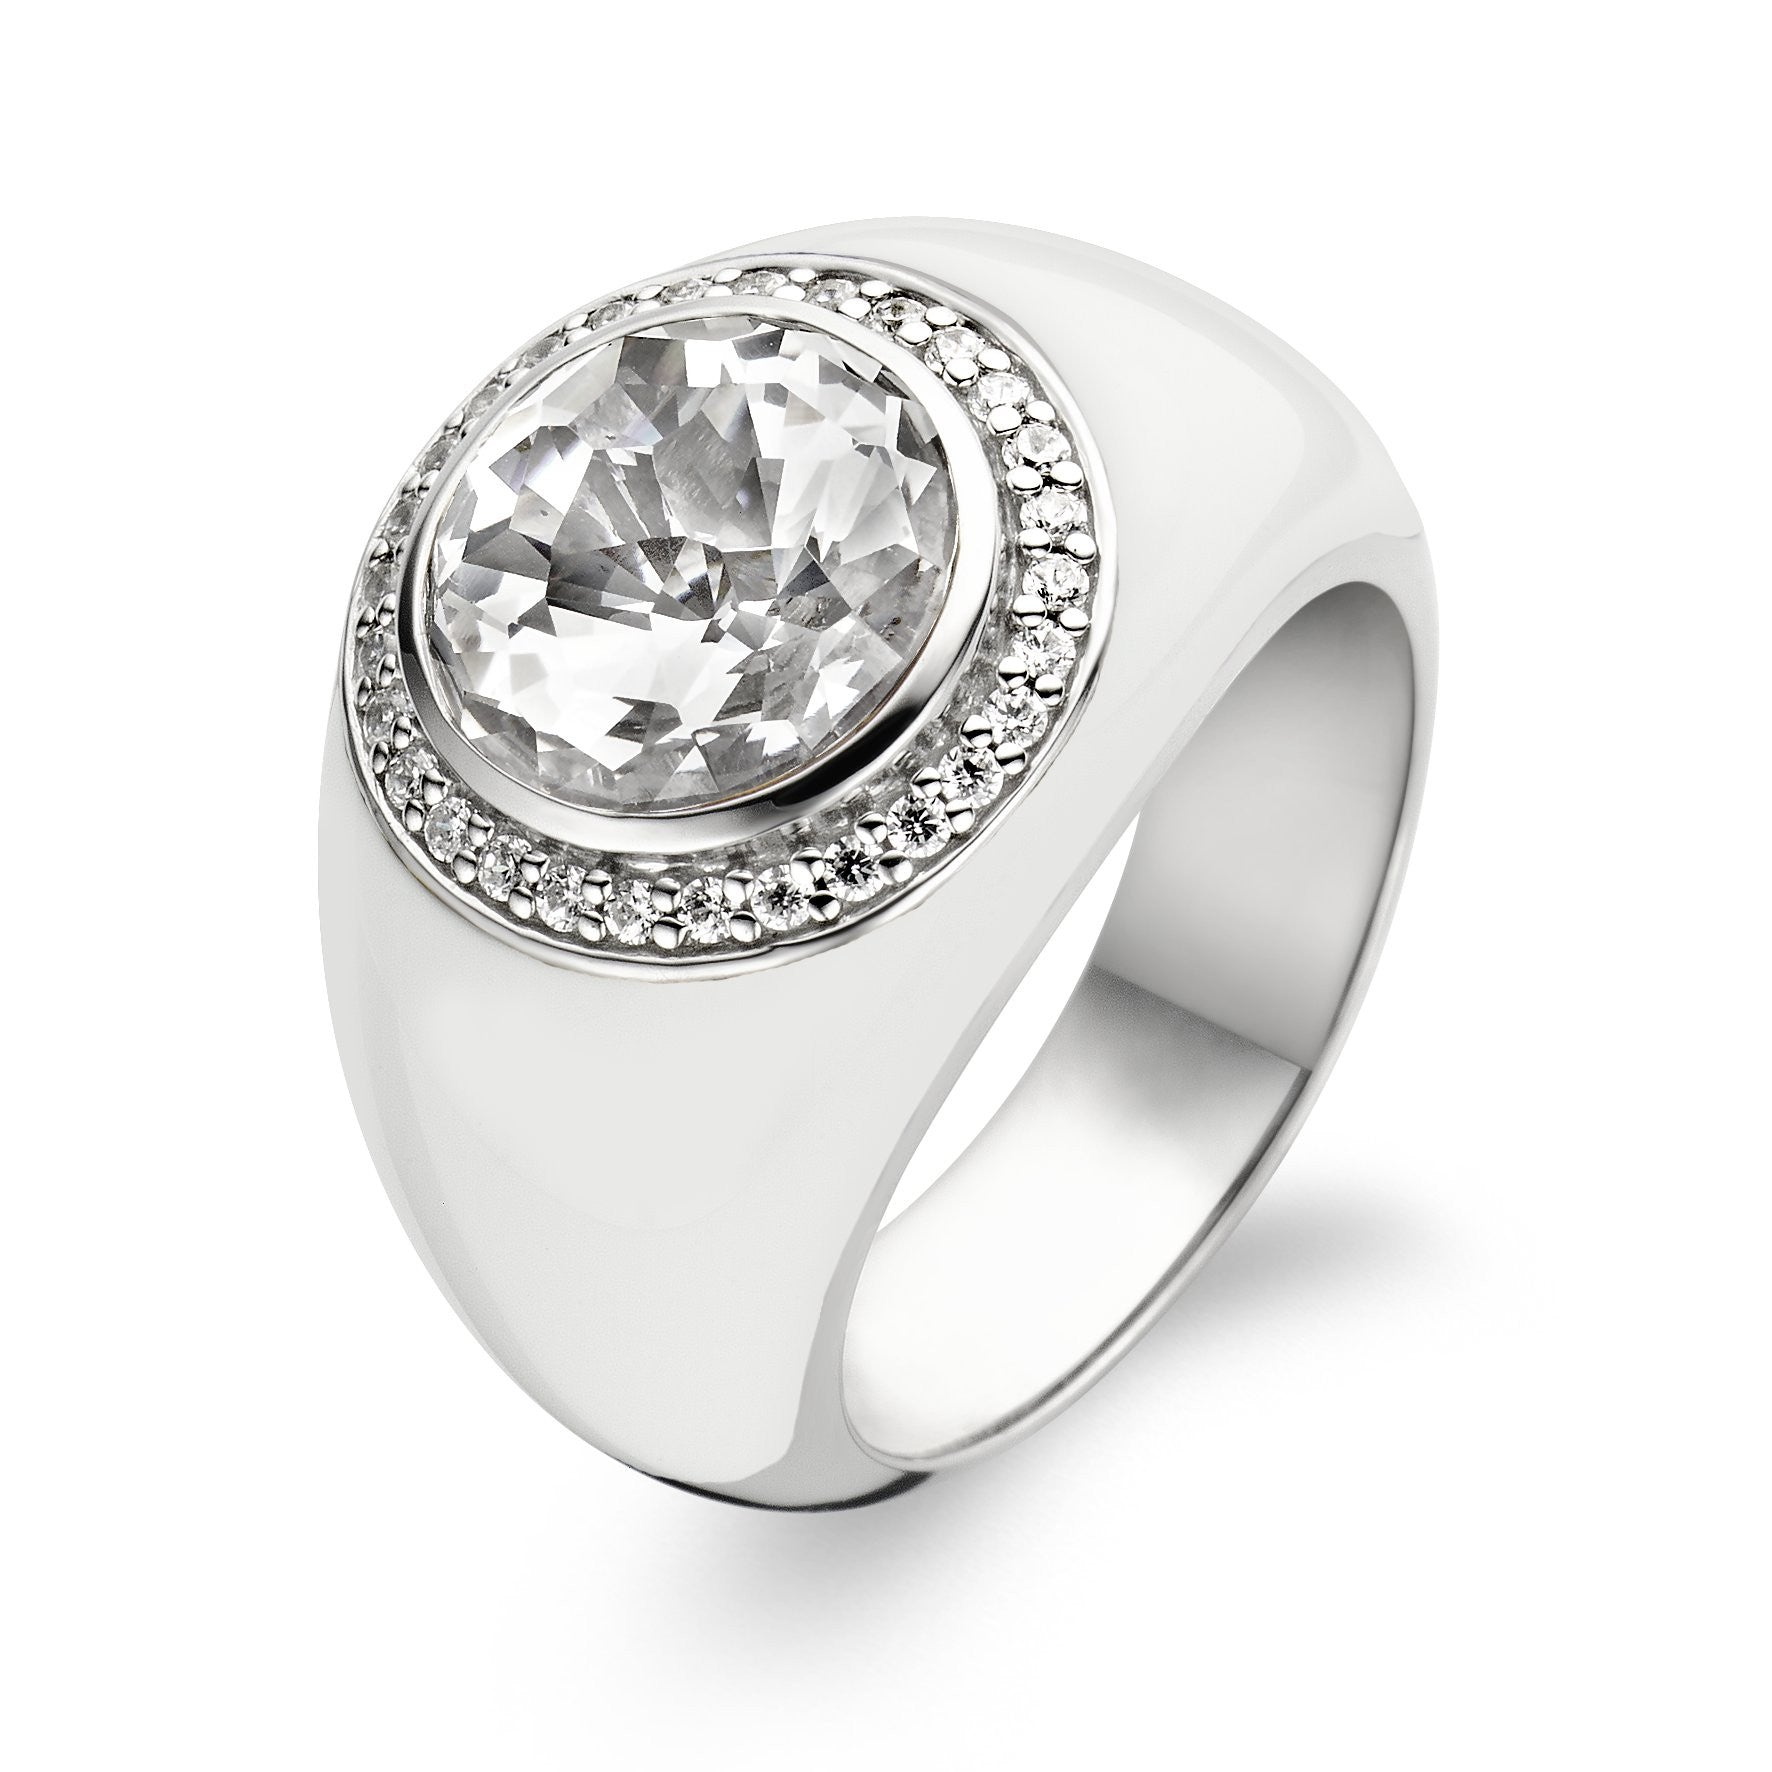 Ti Sento Ring Silver And White Cubic Zirconia Chunky Round